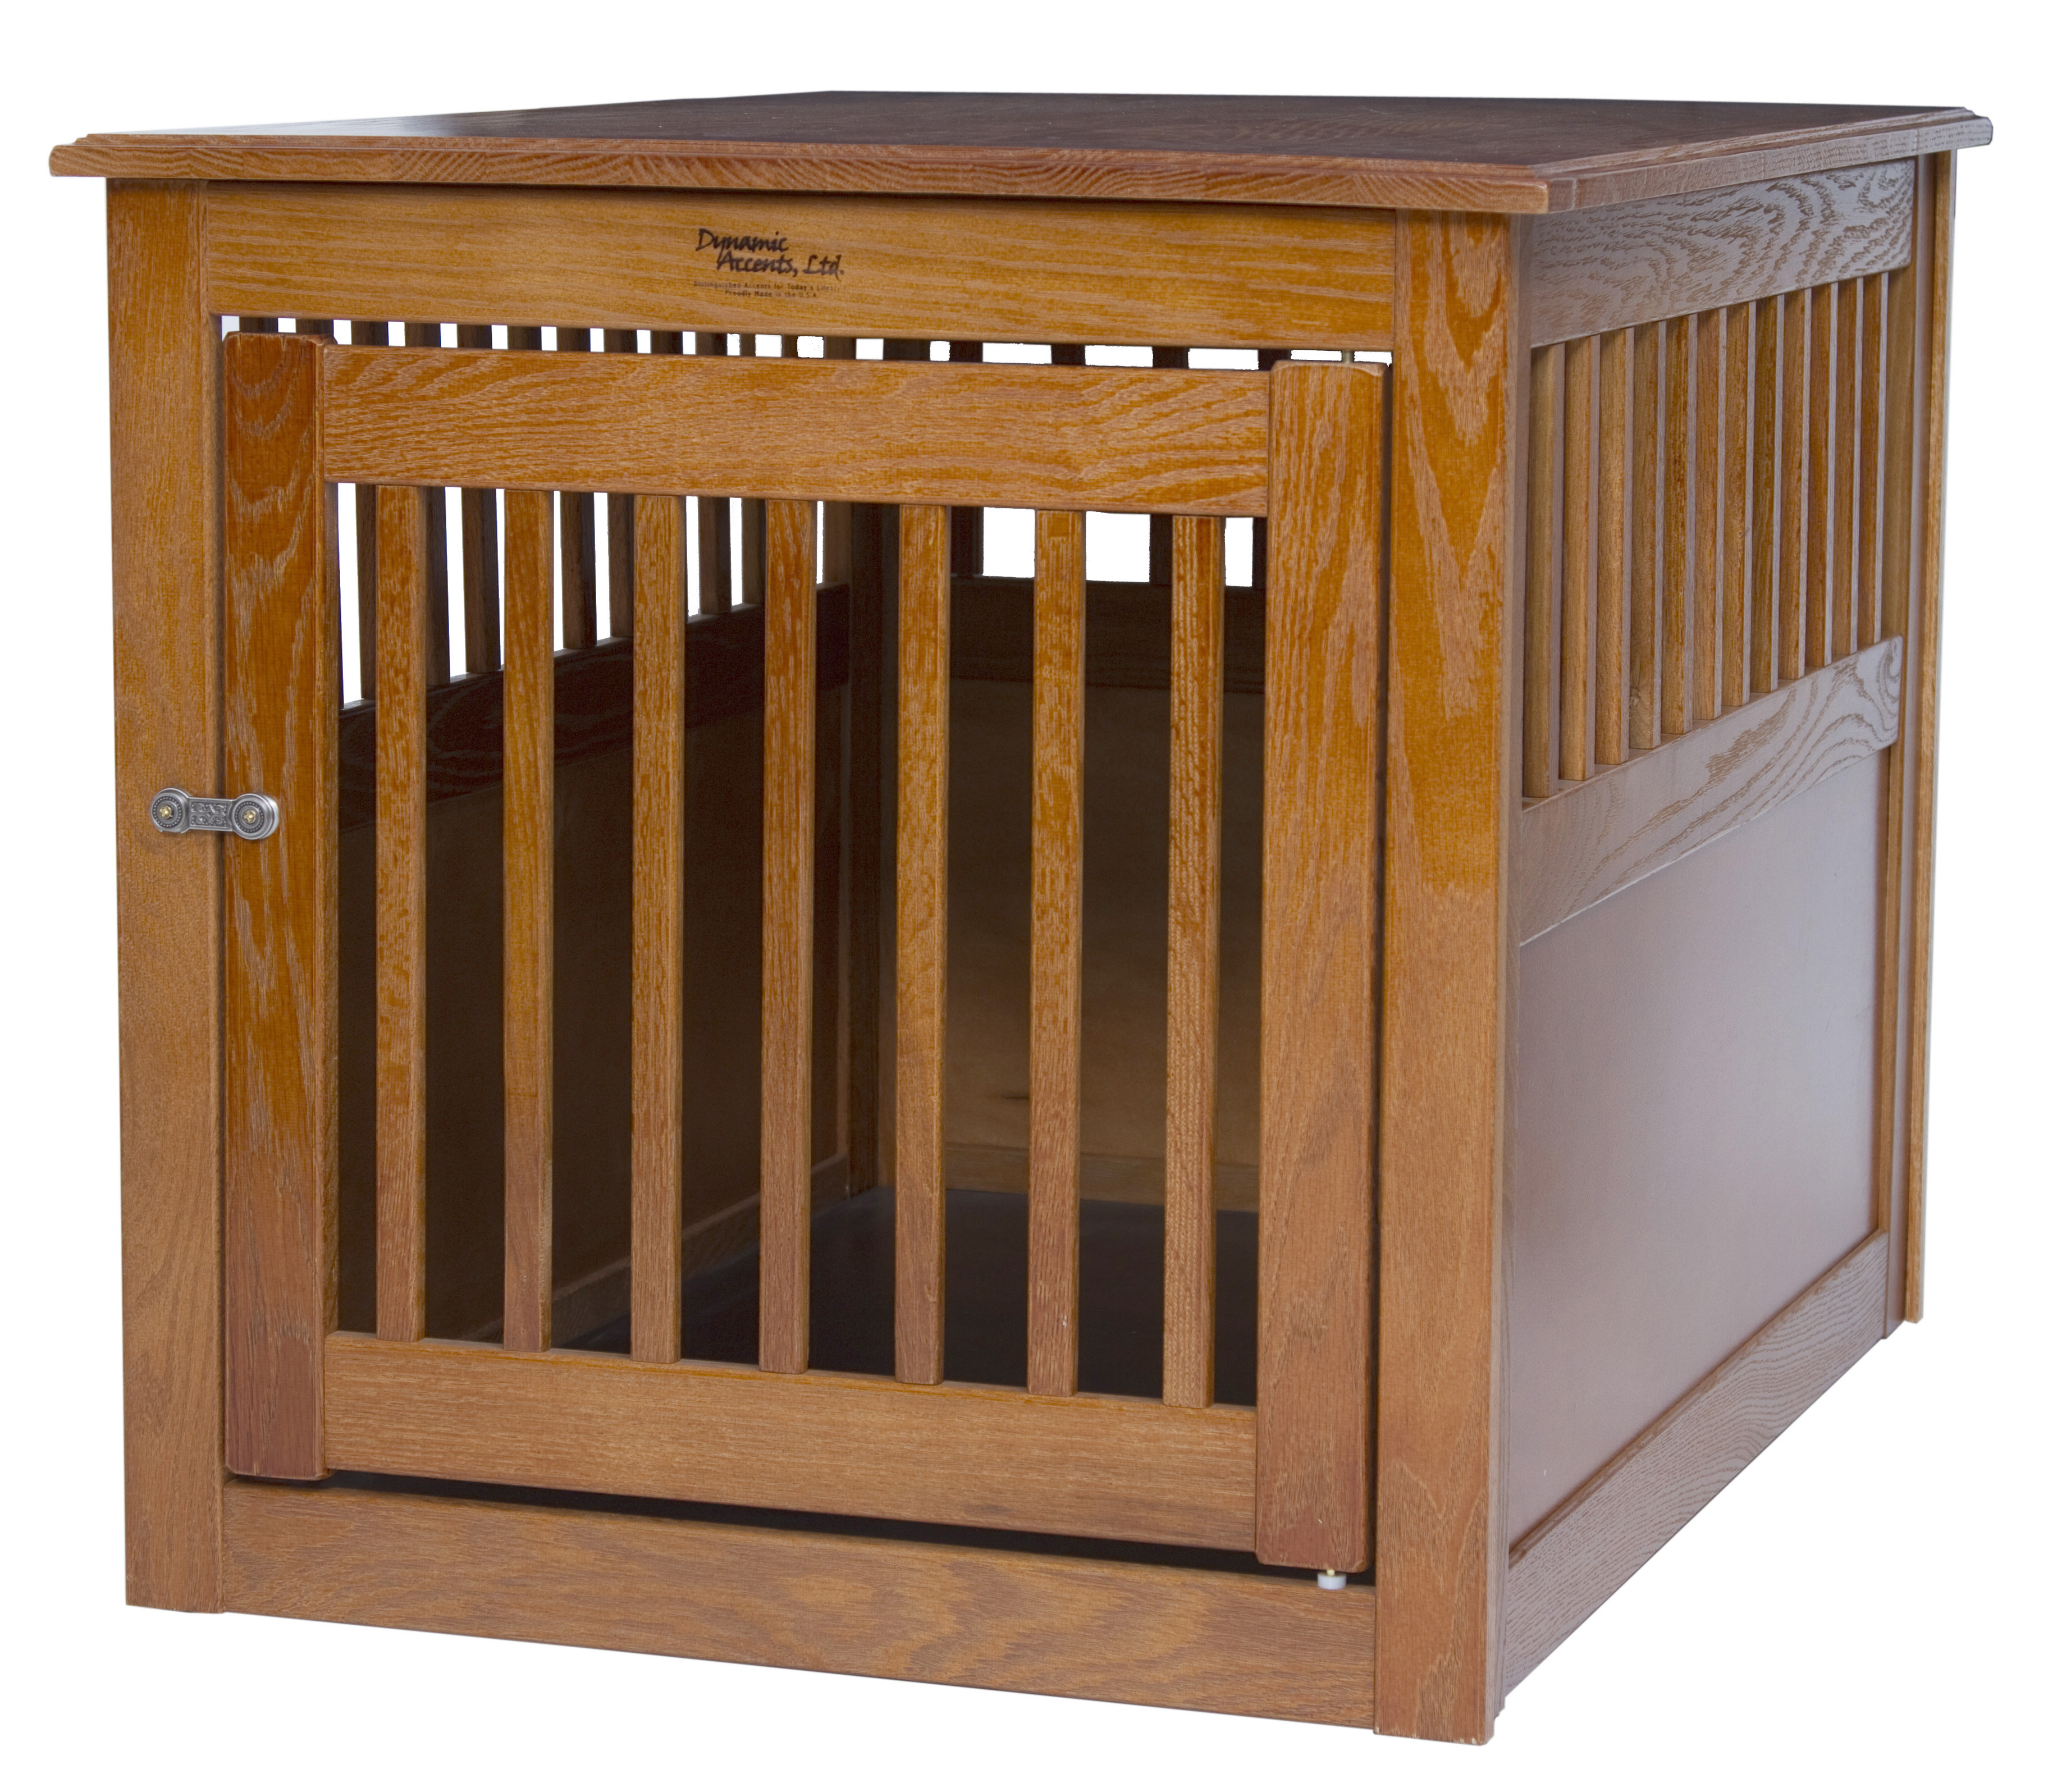 dynamic accents end table large dog pet crate hardwood